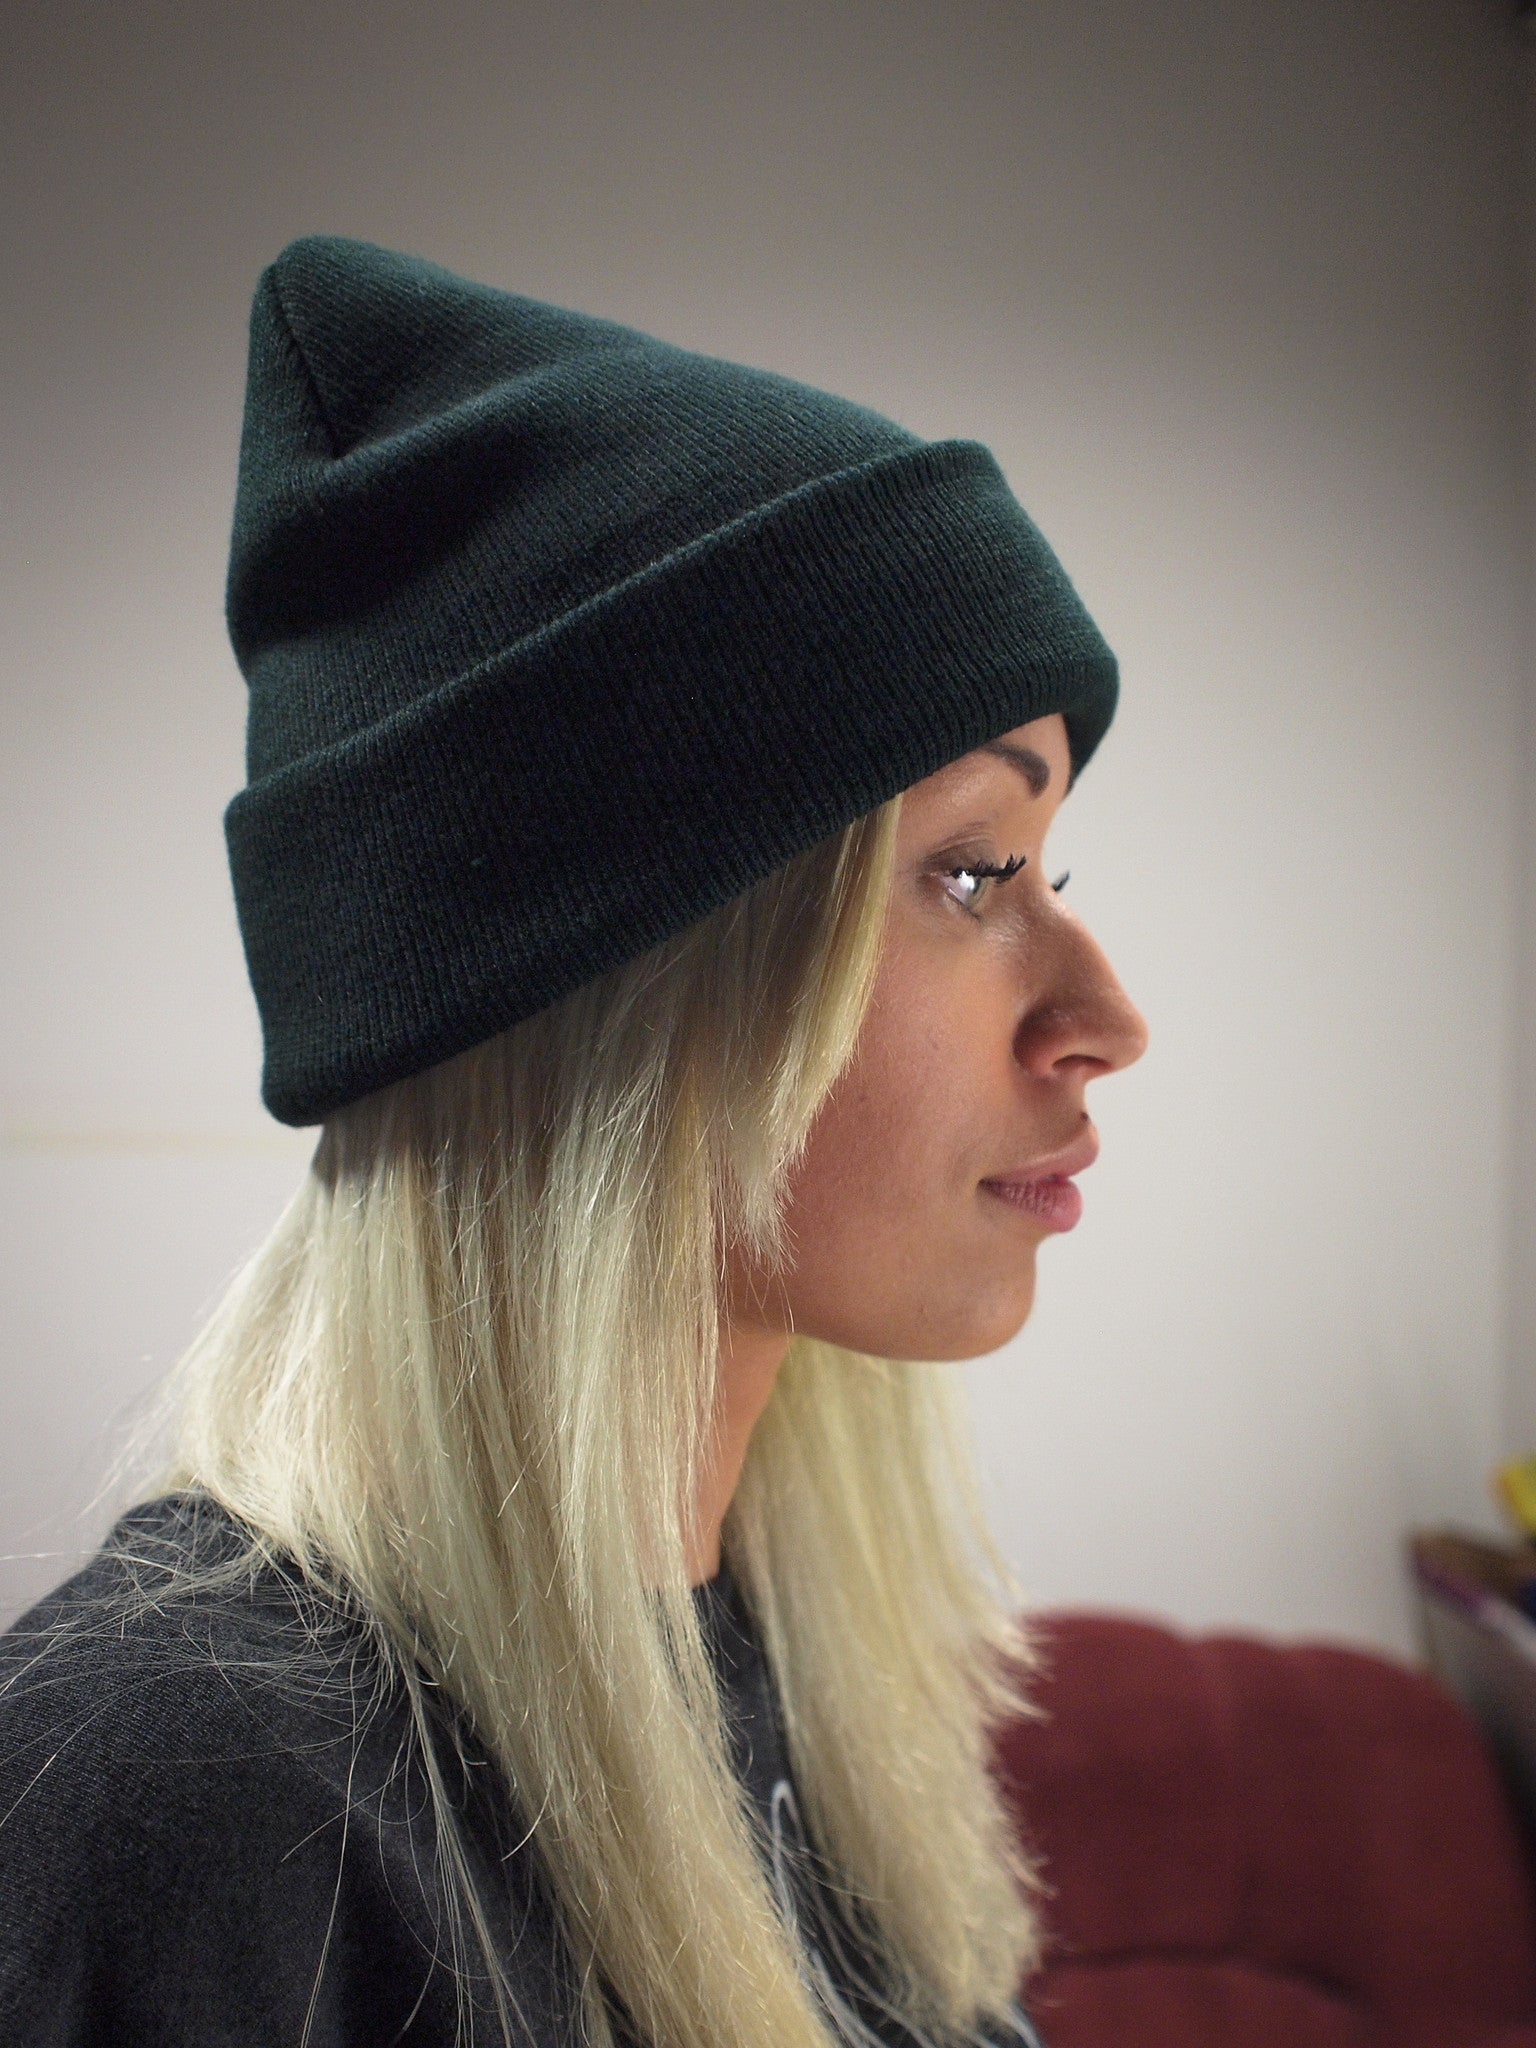 Winterhat Dark Green - HEAVY MENTAL  - 3